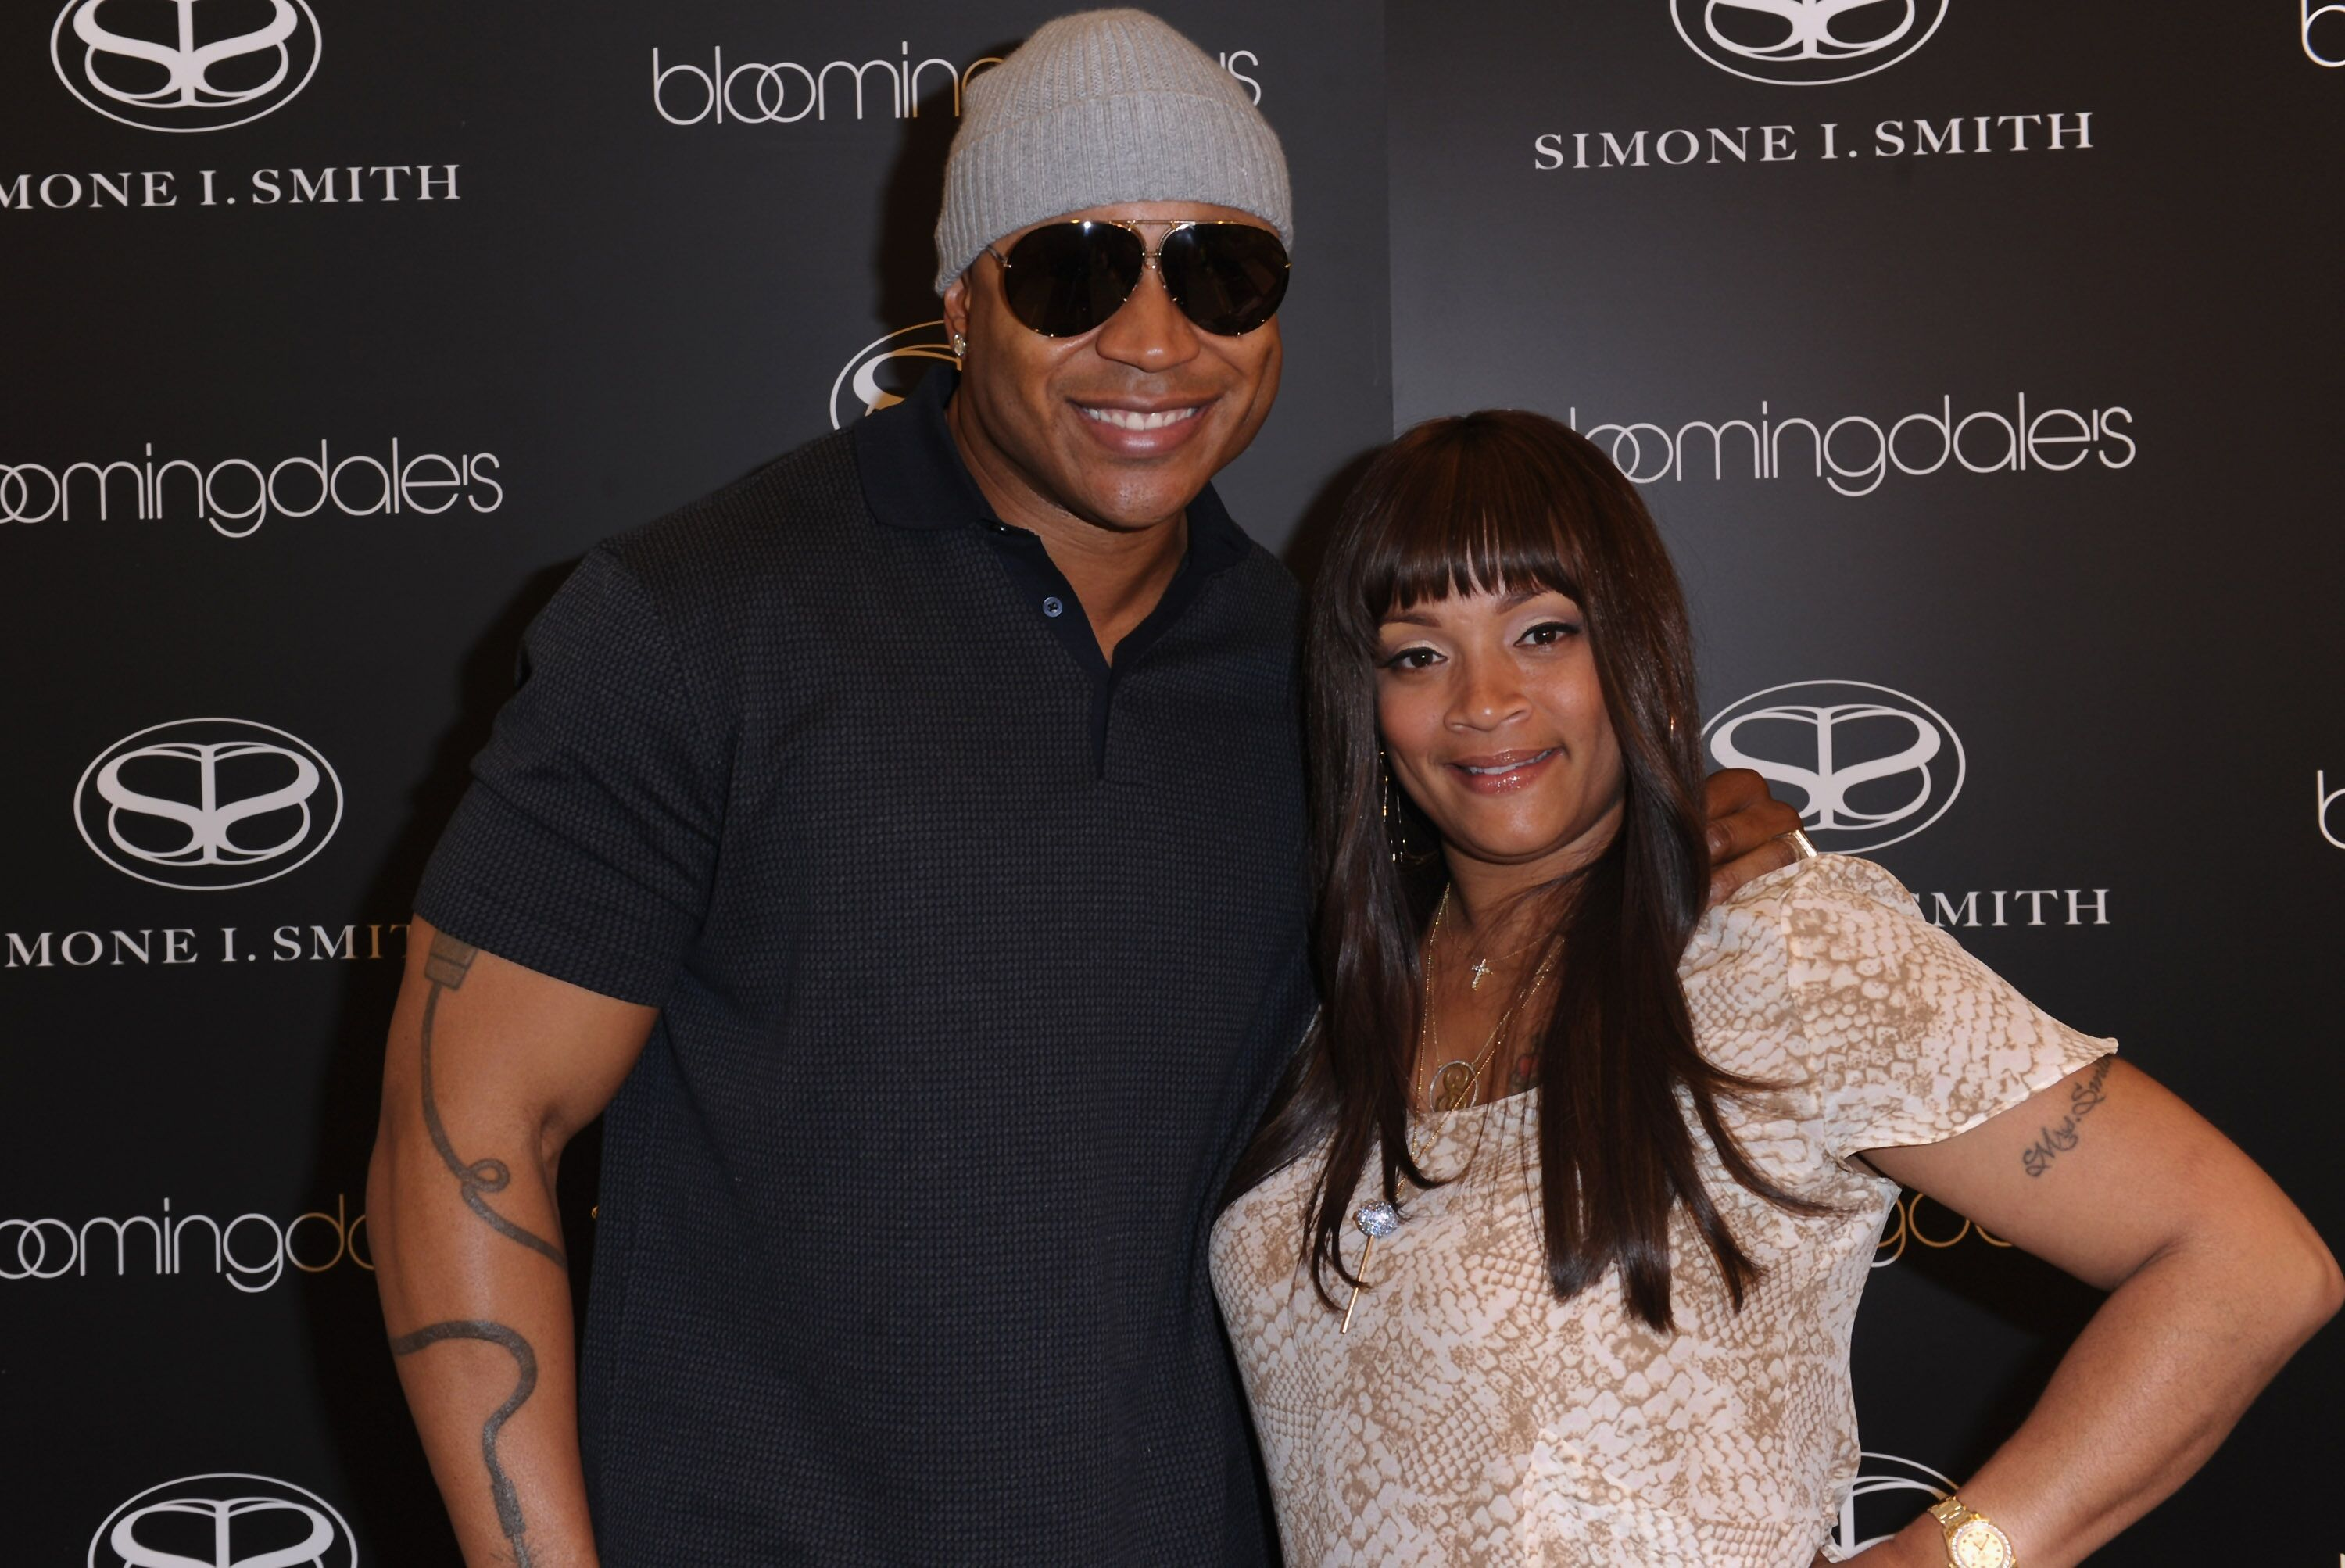 Actor LL Cool J and designer Simone I. Smith attend a personal appearance by Simone I. Smith at Bloomingdale's on May 12, 2011 in Century City, California. | Photo: Getty Images